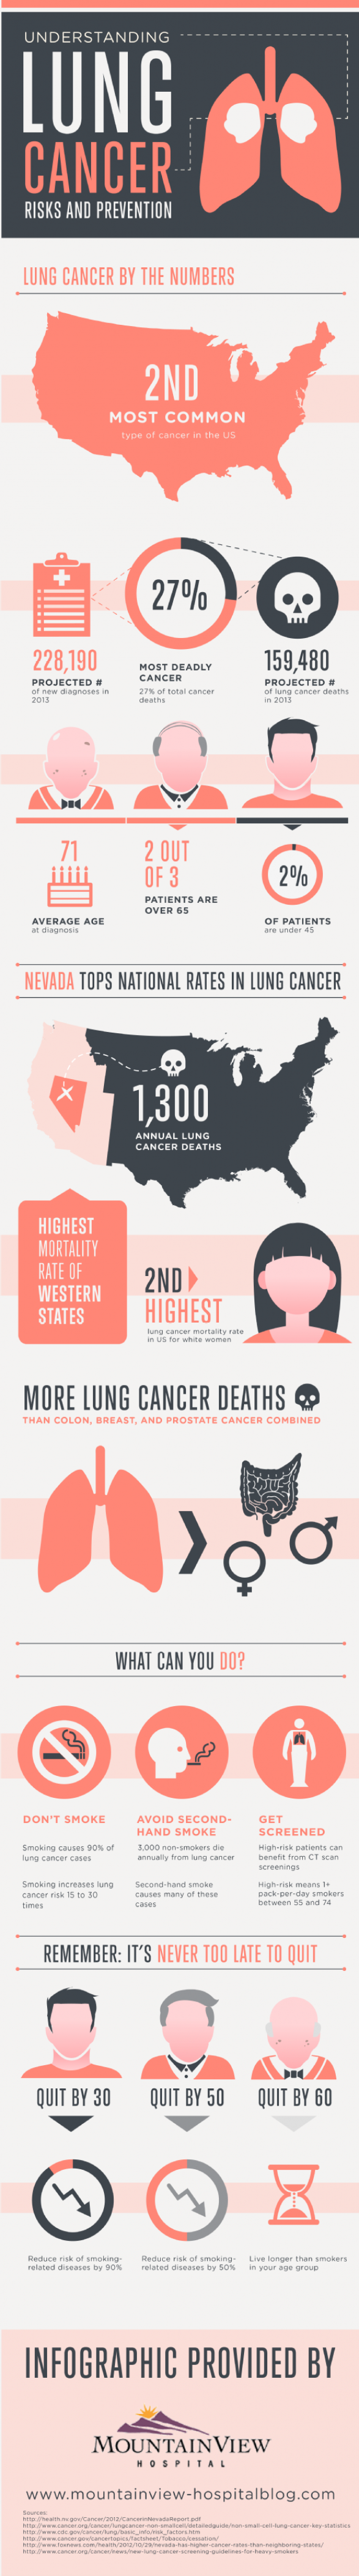 Understanding Lung Cancer Risks and Prevention